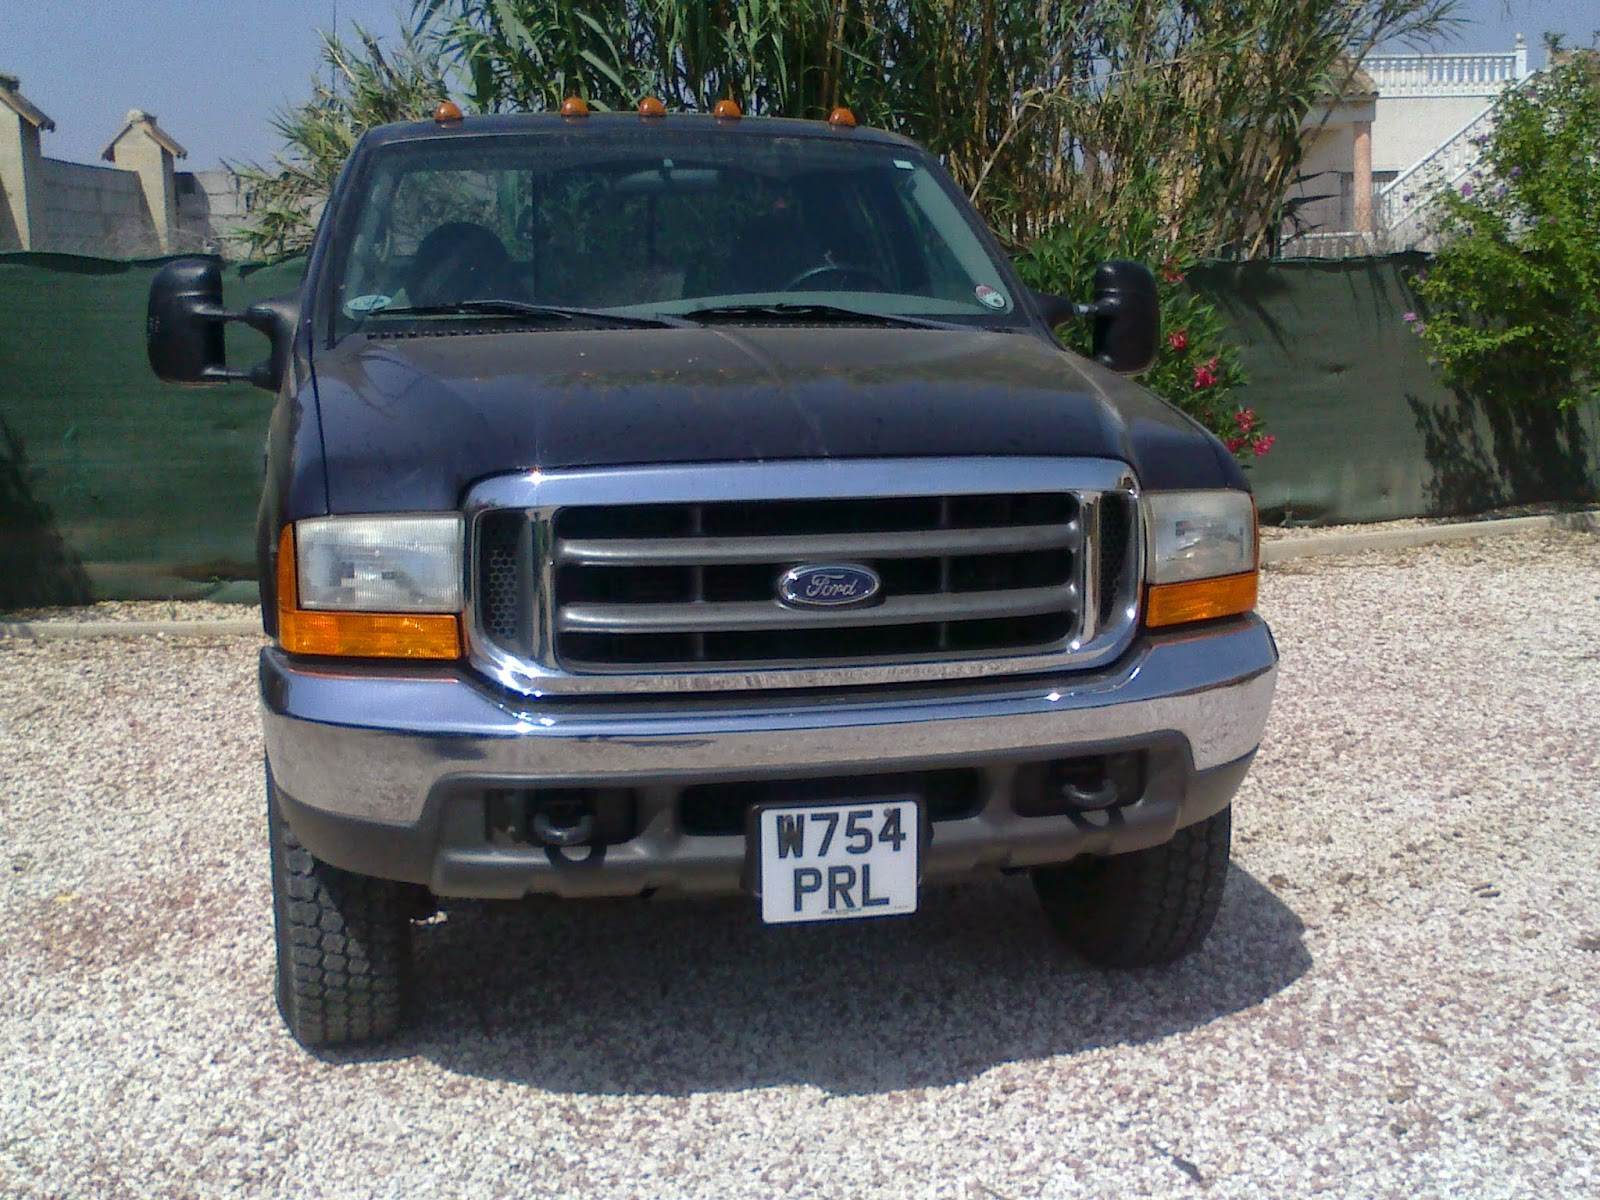 F350 pickup for sale